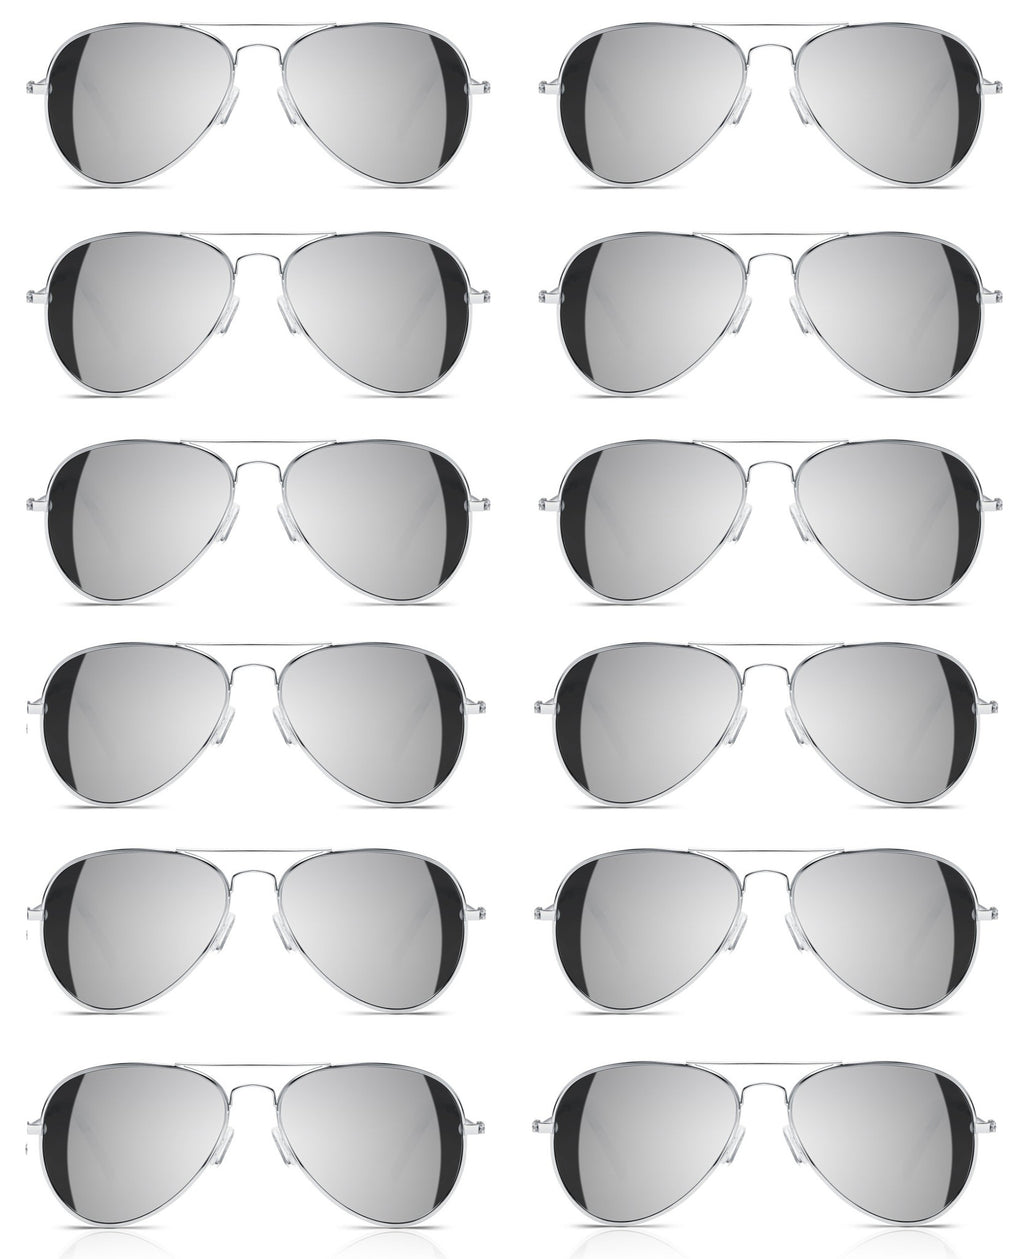 *LOT OF 12* Full Mirror Aviator Sunglasses w/ Metal Silver Frame Classic Retro - Neon Nation